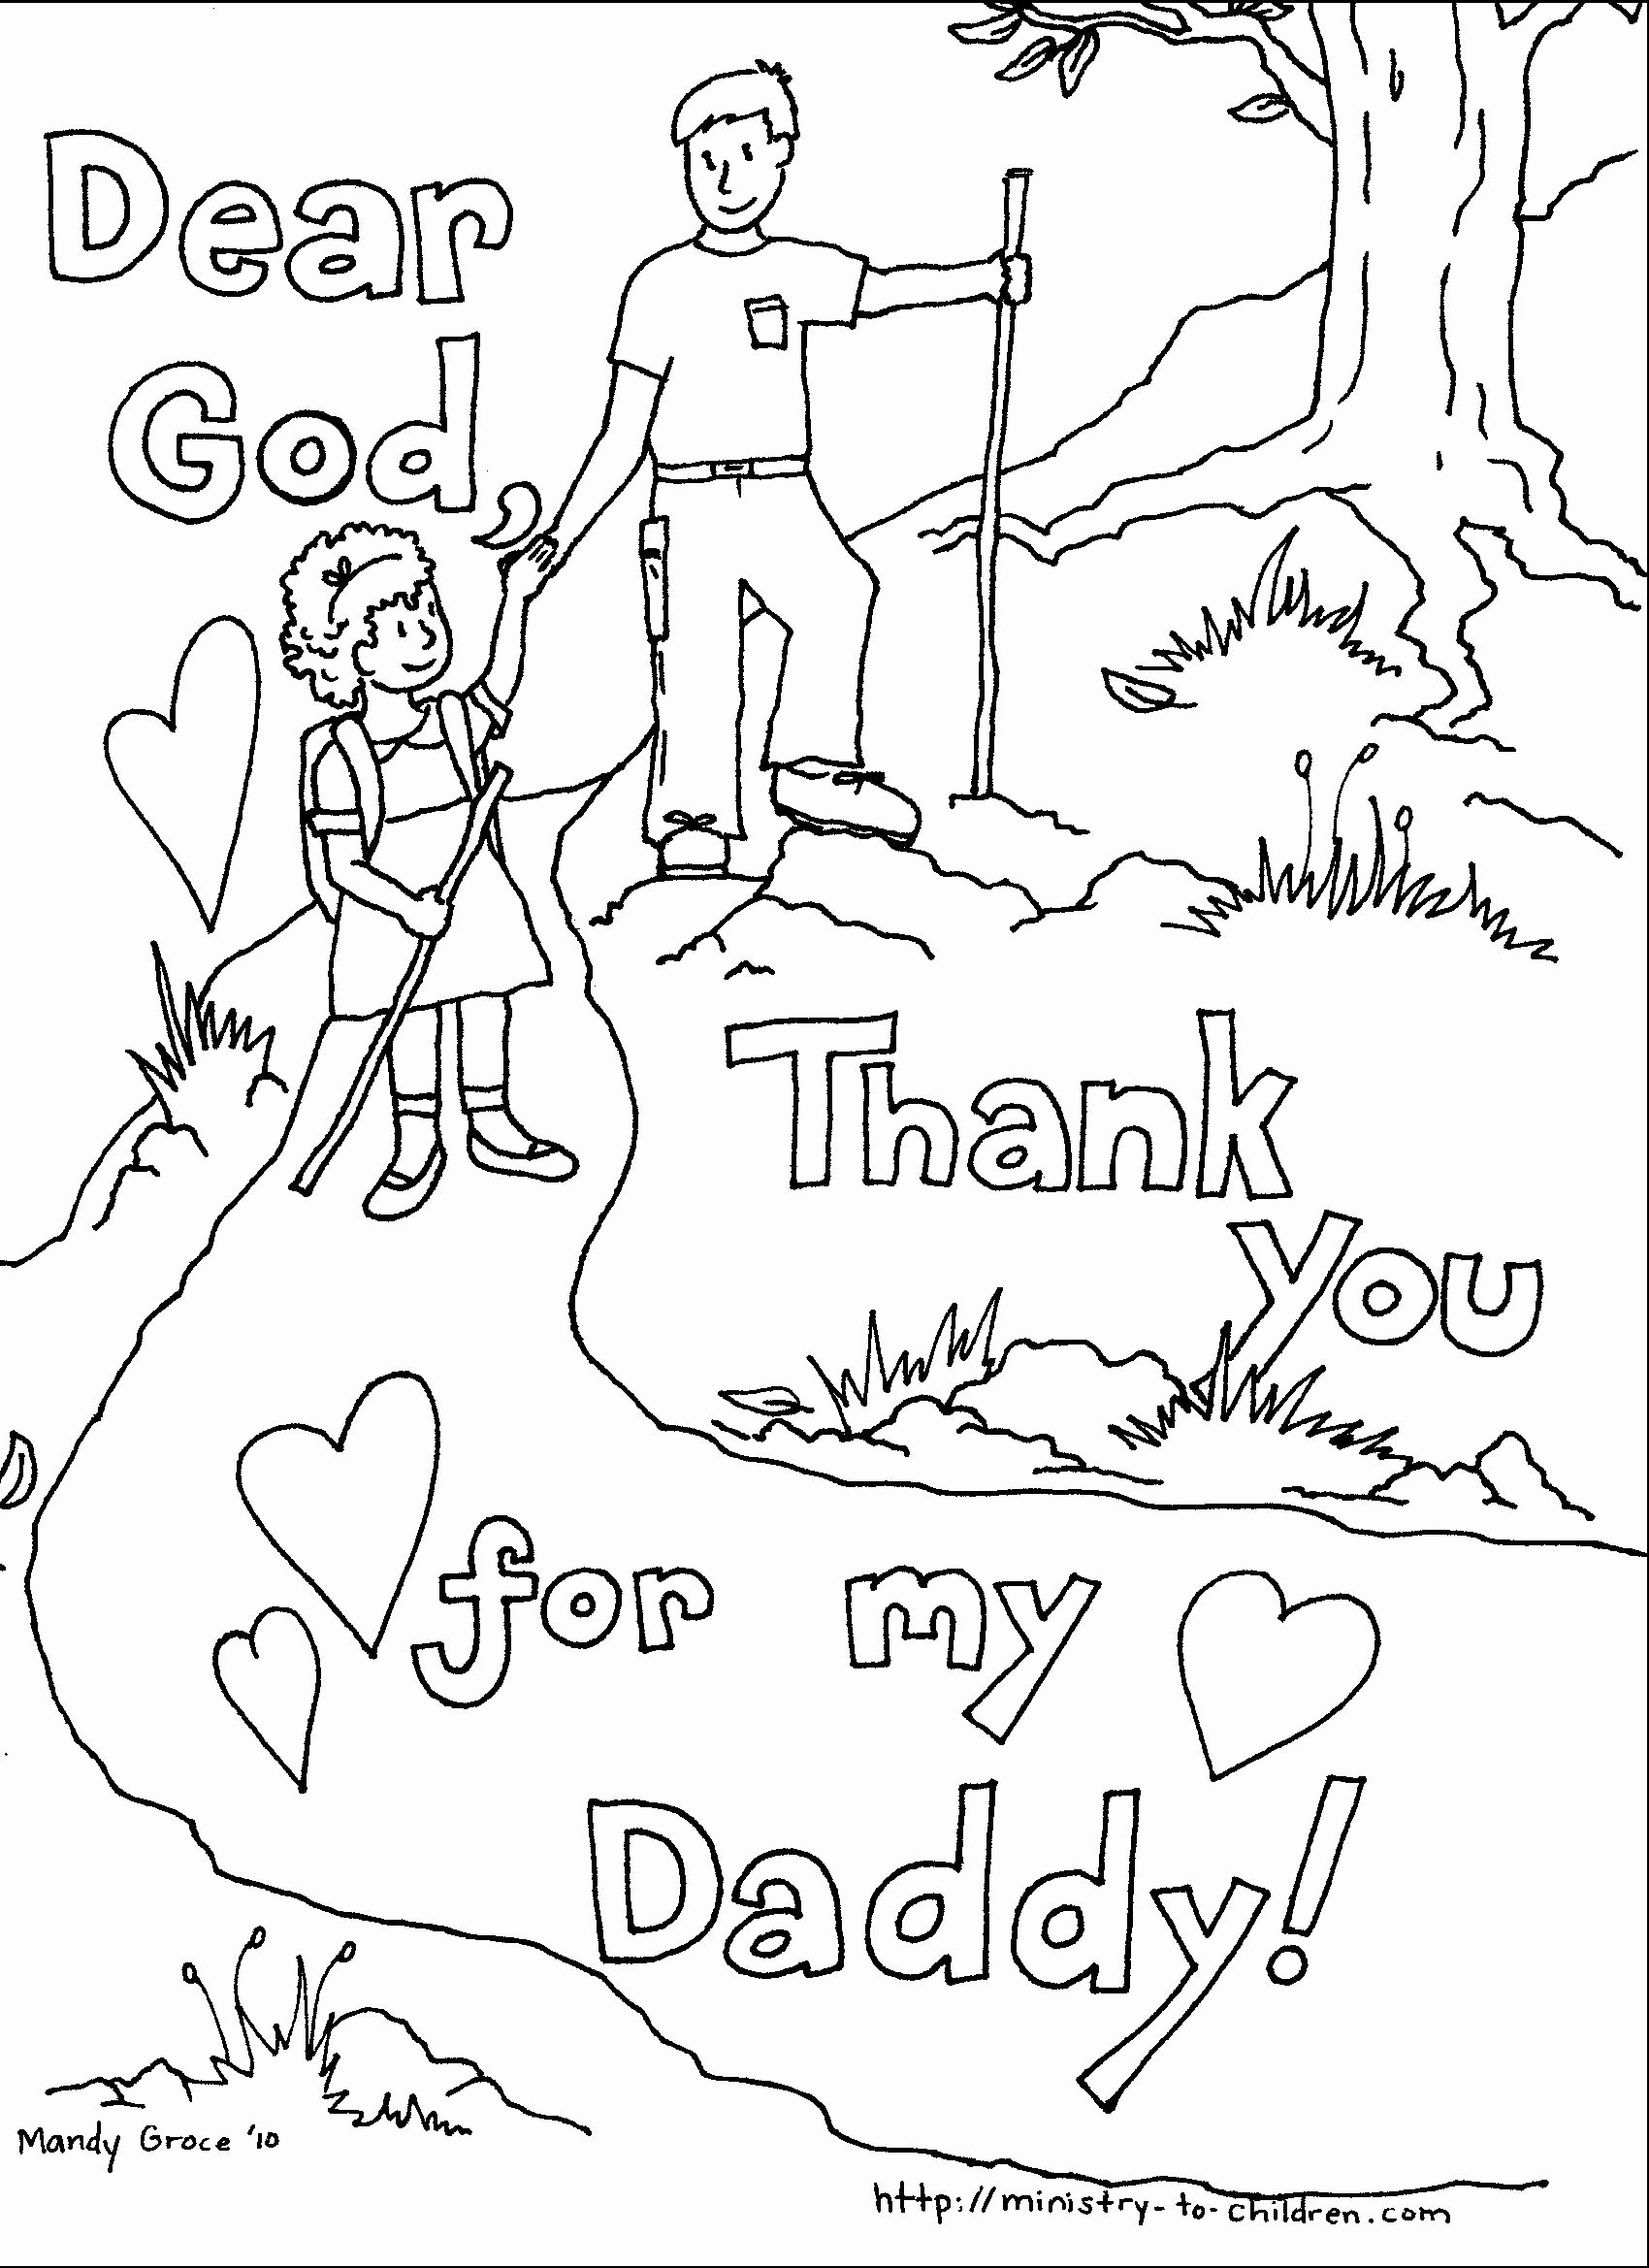 Coloring Ideas : Coloring Pages For Grandparents Day Printable - Free Printable Fathers Day Coloring Pages For Grandpa